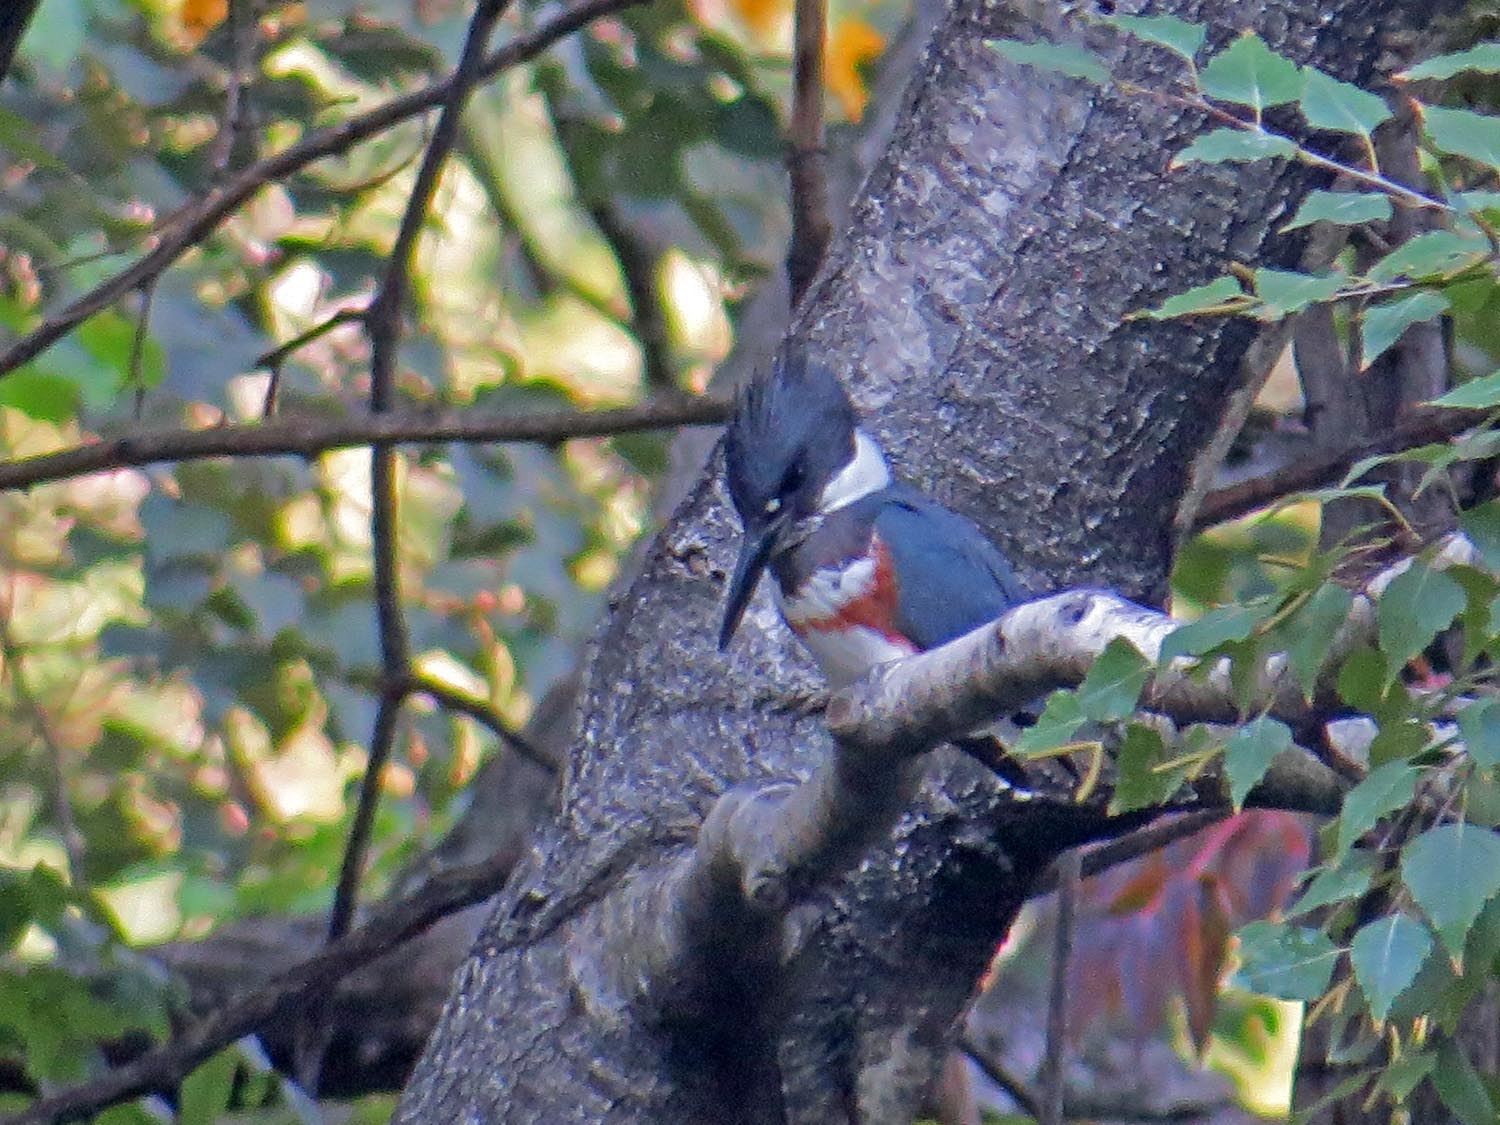 Female belted kingfisher, the Pond, Central Park, October 13, 2015